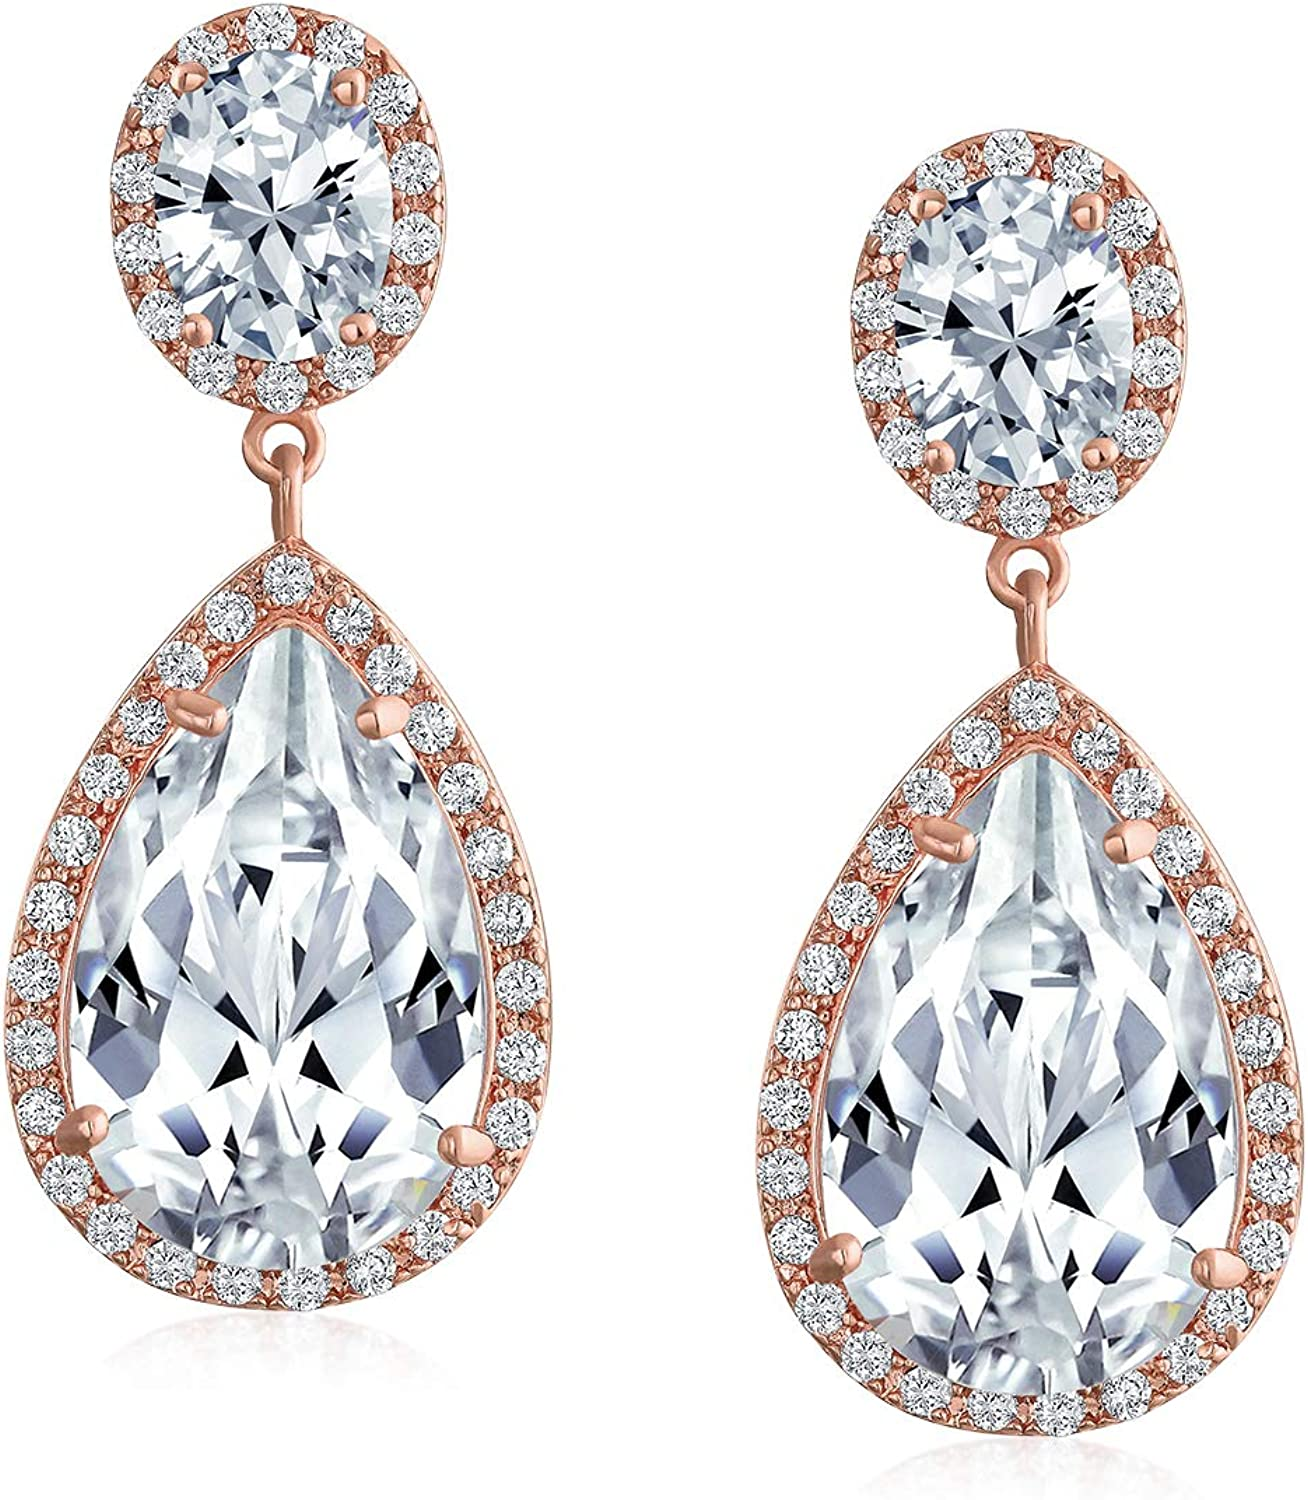 CZ Crystal Statement Earrings Large